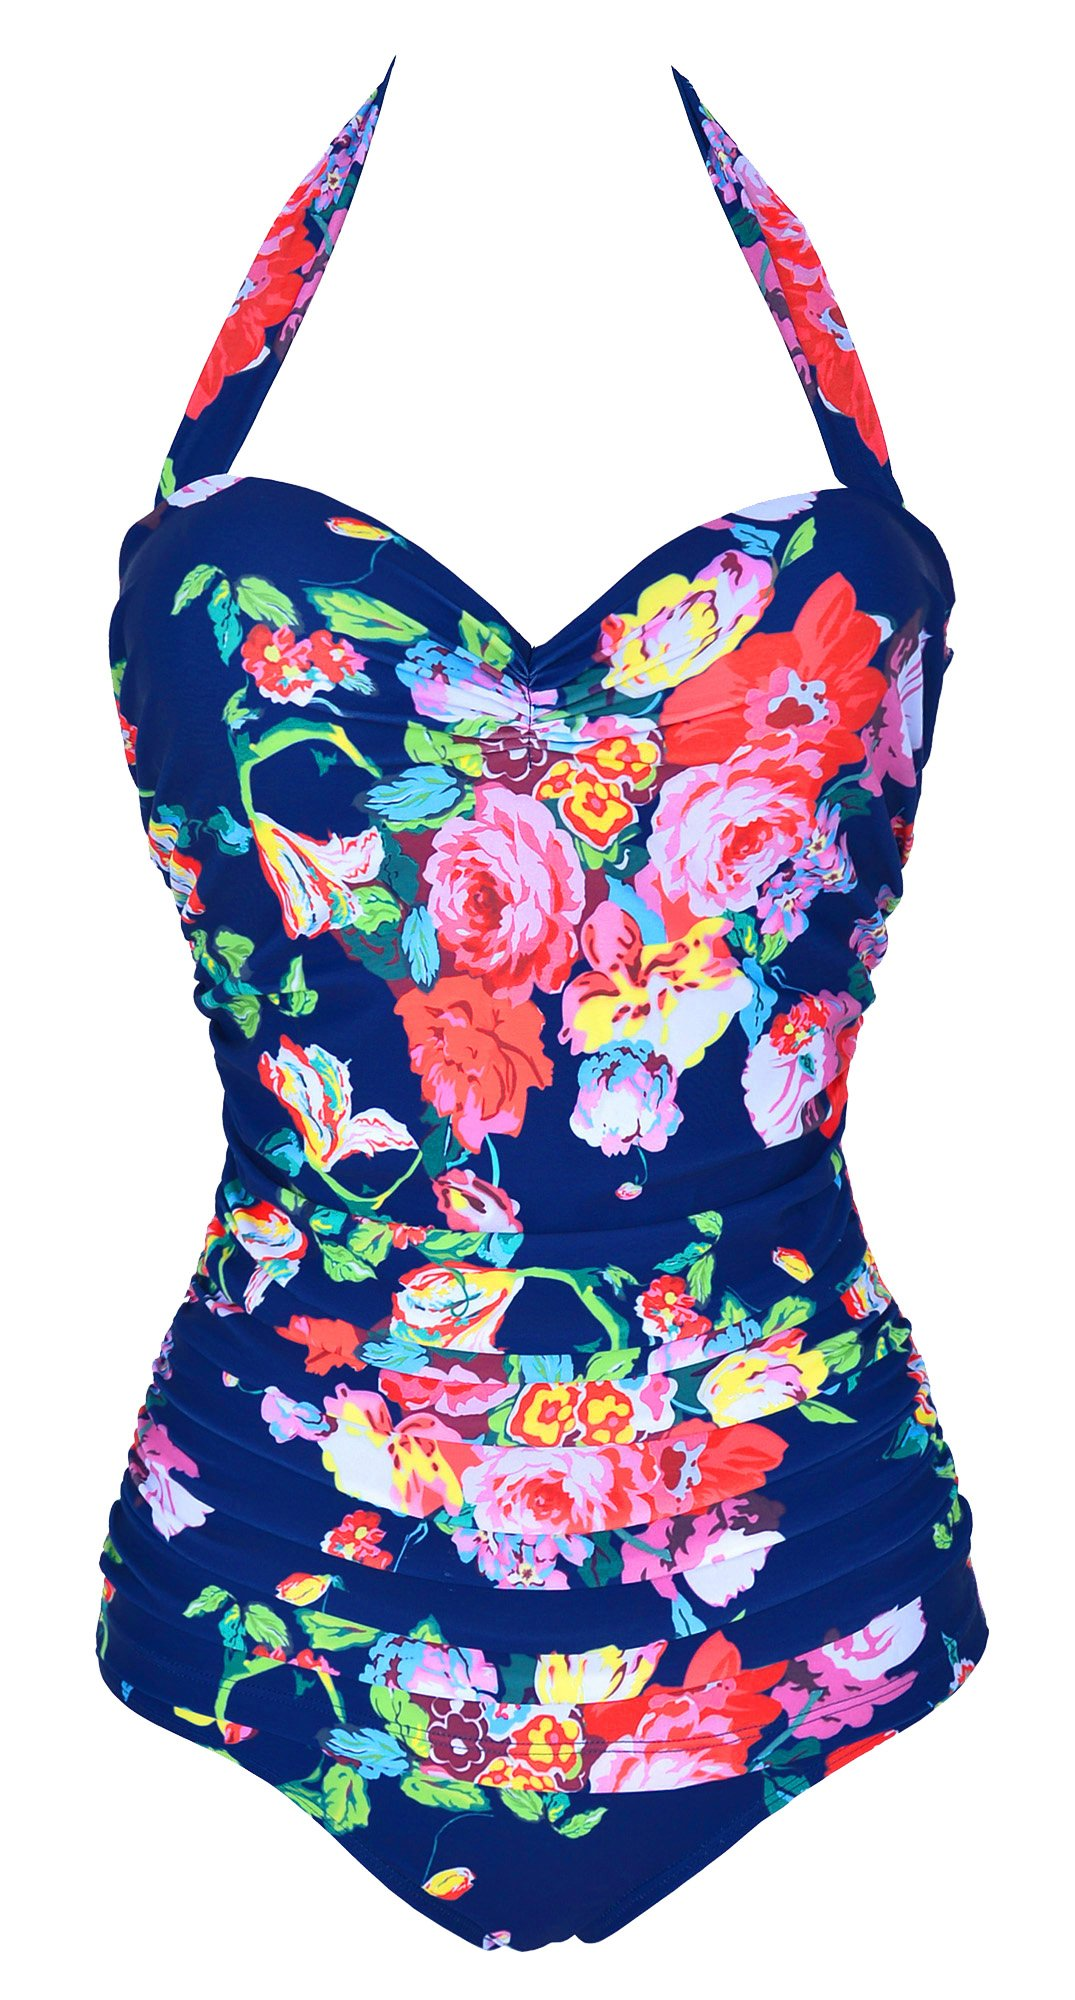 Ebuddy 50s Elegant Inspired Retro Vintage One Piece Pin up Monokinis Swimsuit,Colorful+Blue-L